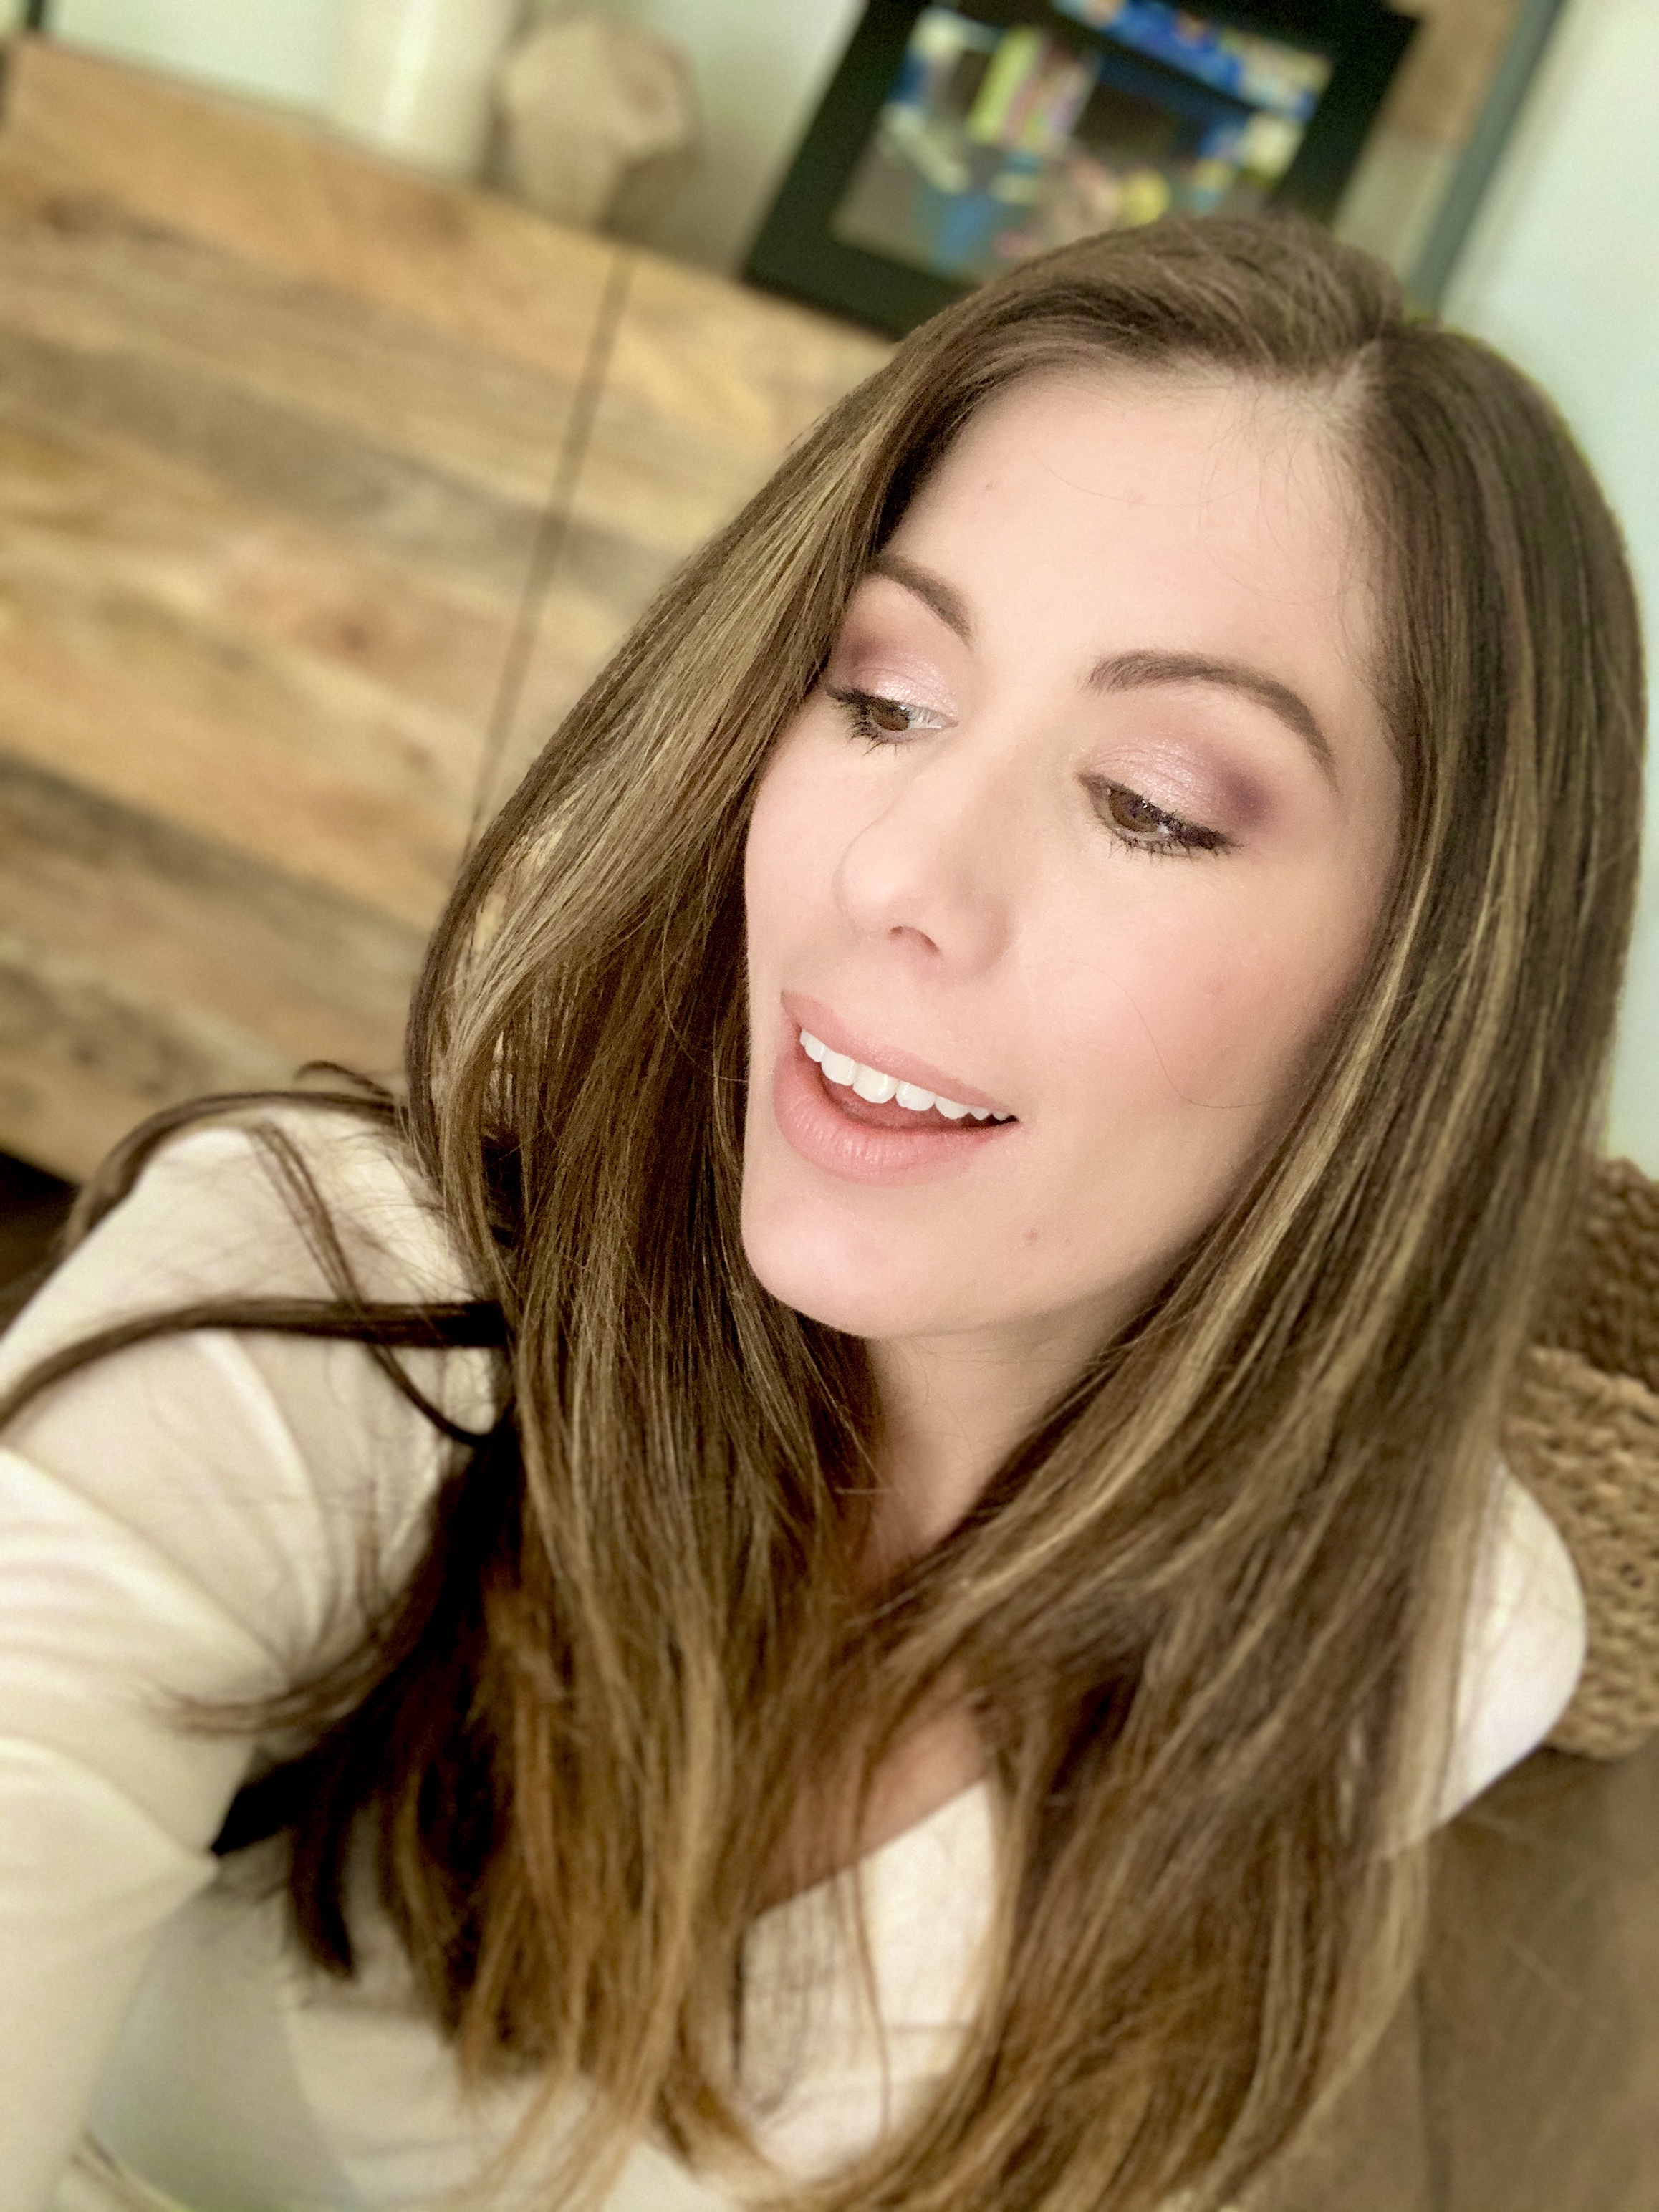 Houston lifestyle blogger Maria Munoz in tutorial for eyeshadow for brown eyes